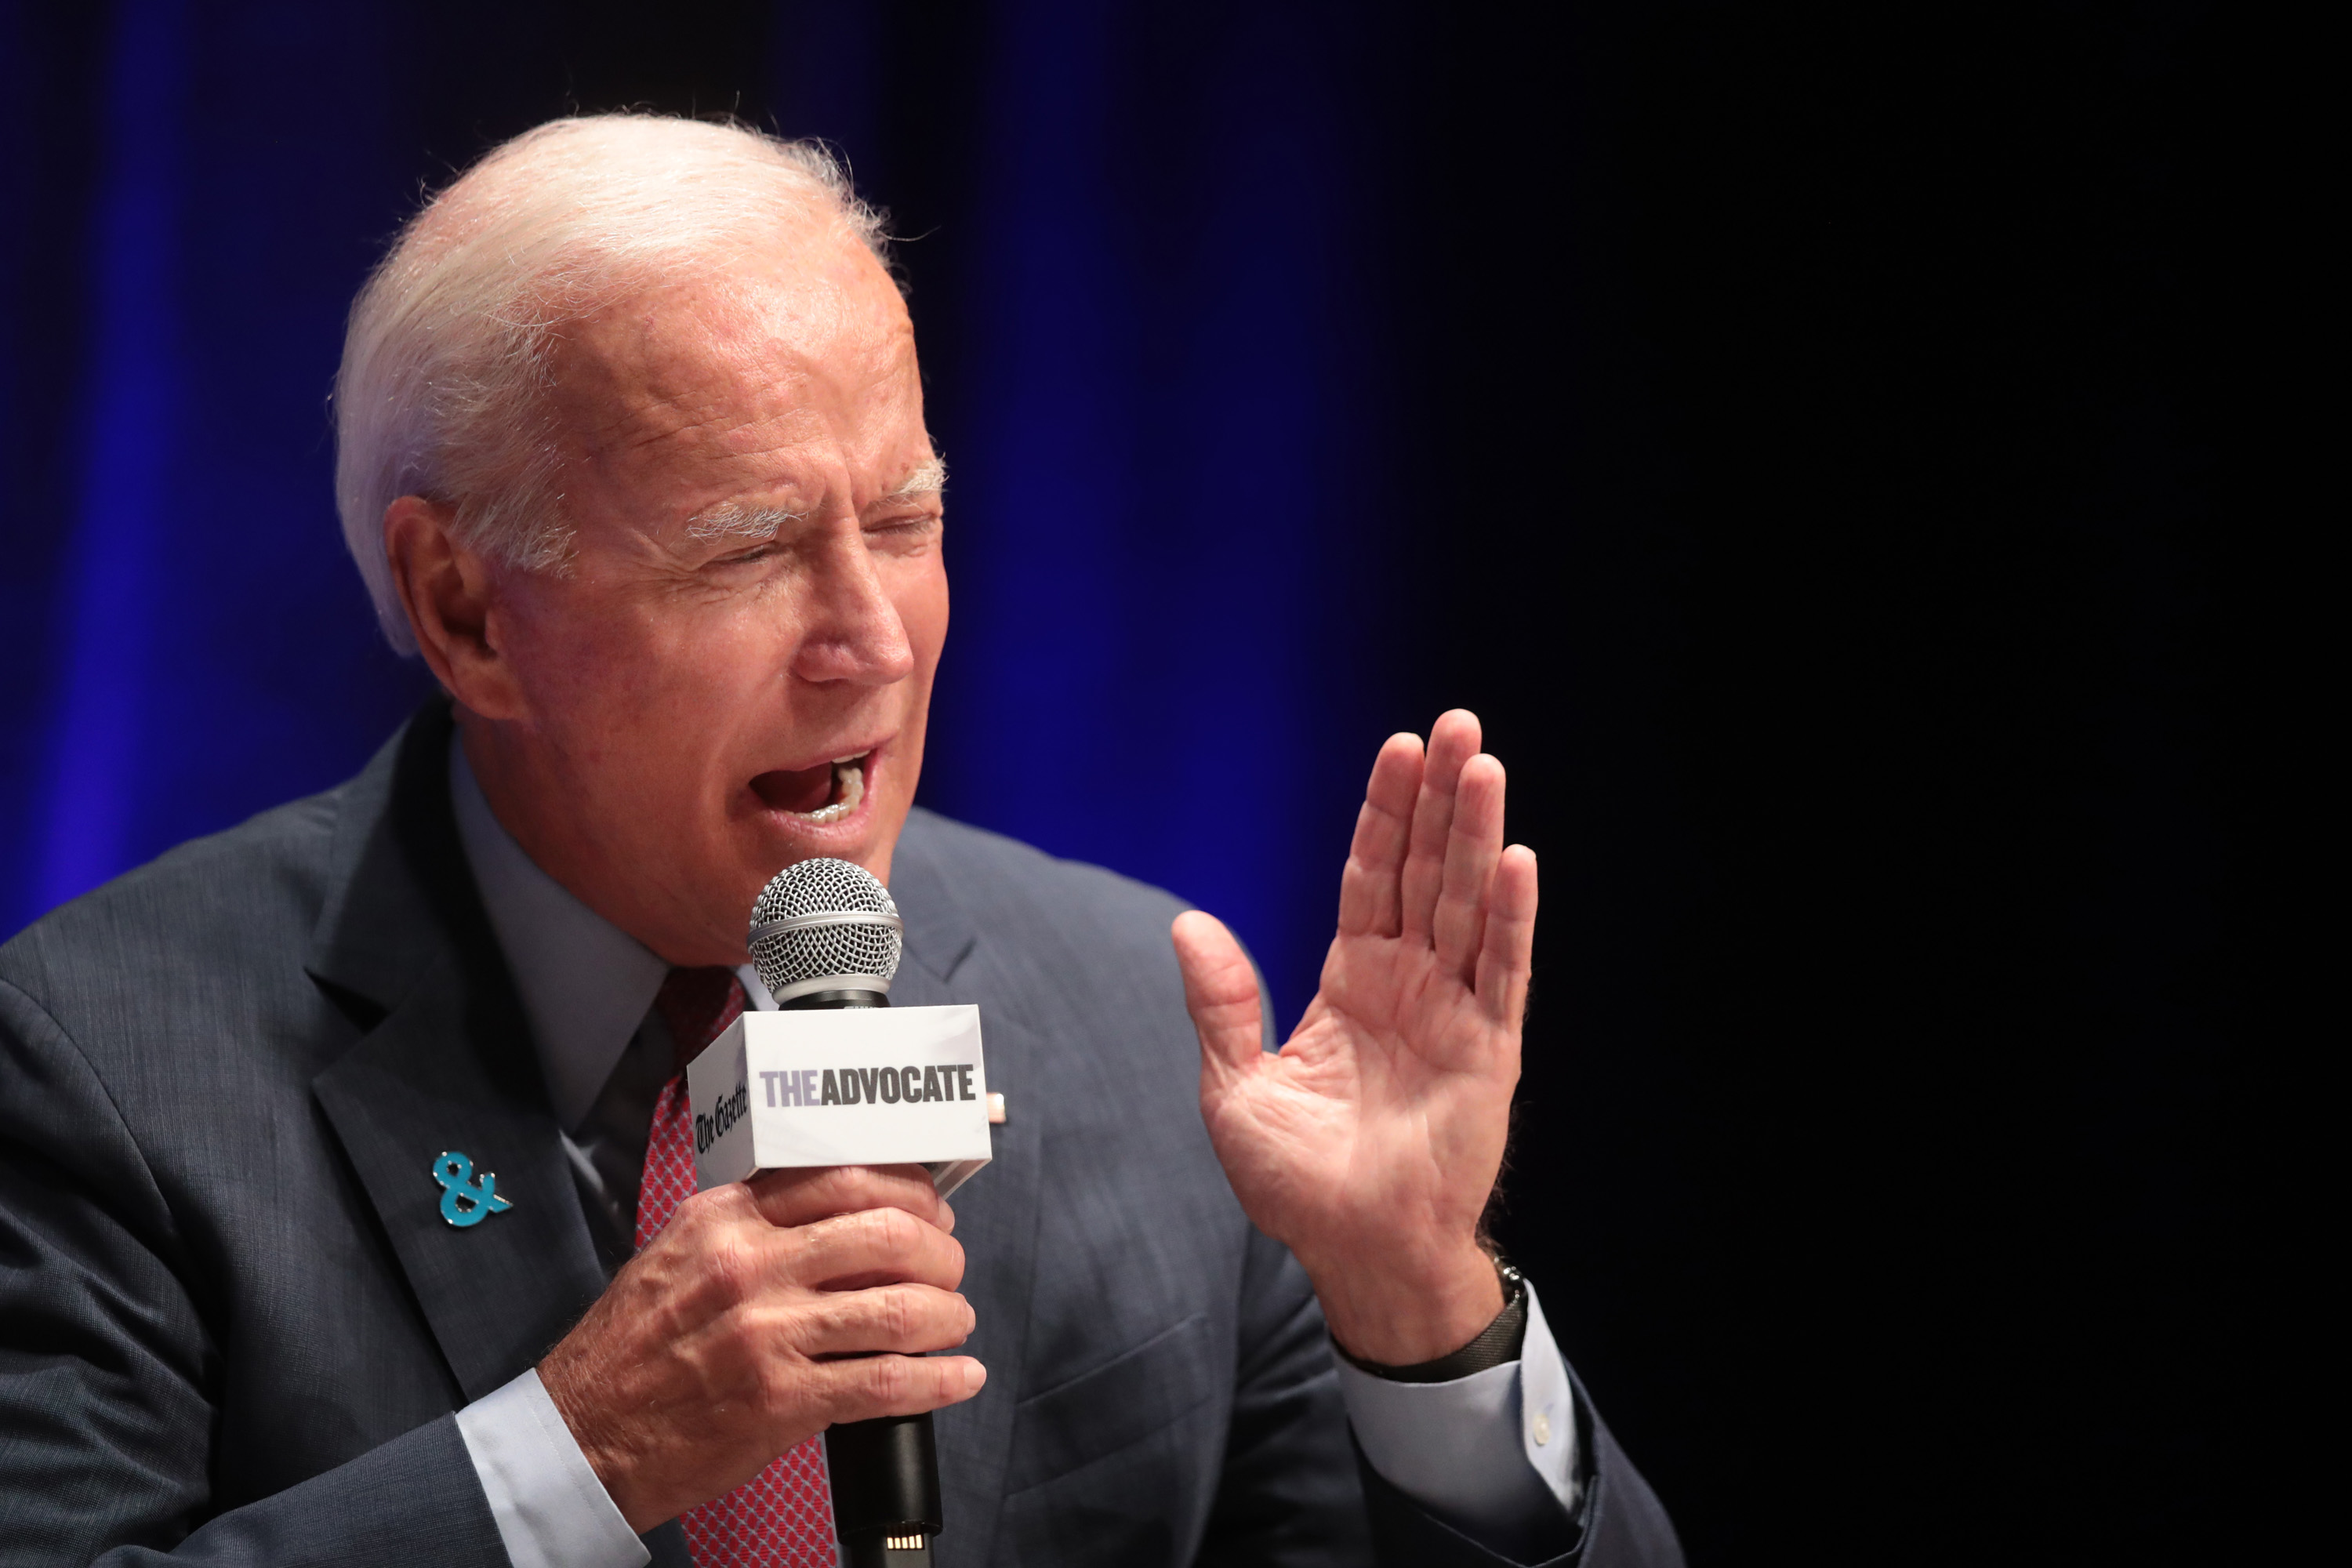 An exchange at an LGBTQ forum reopens questions about Joe Biden's treatment of women